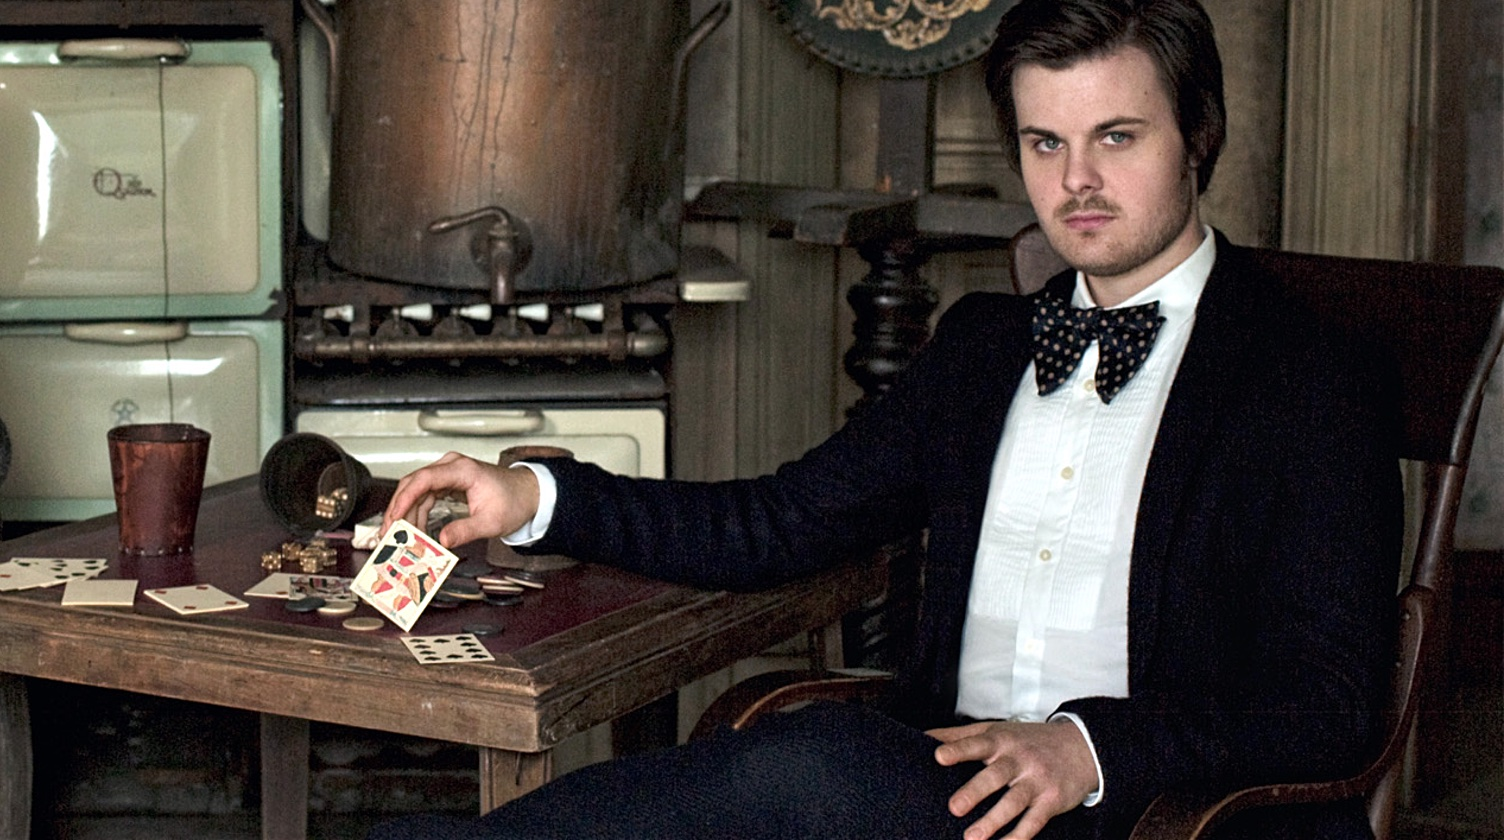 Spencer Smith - Panic! at the Disco